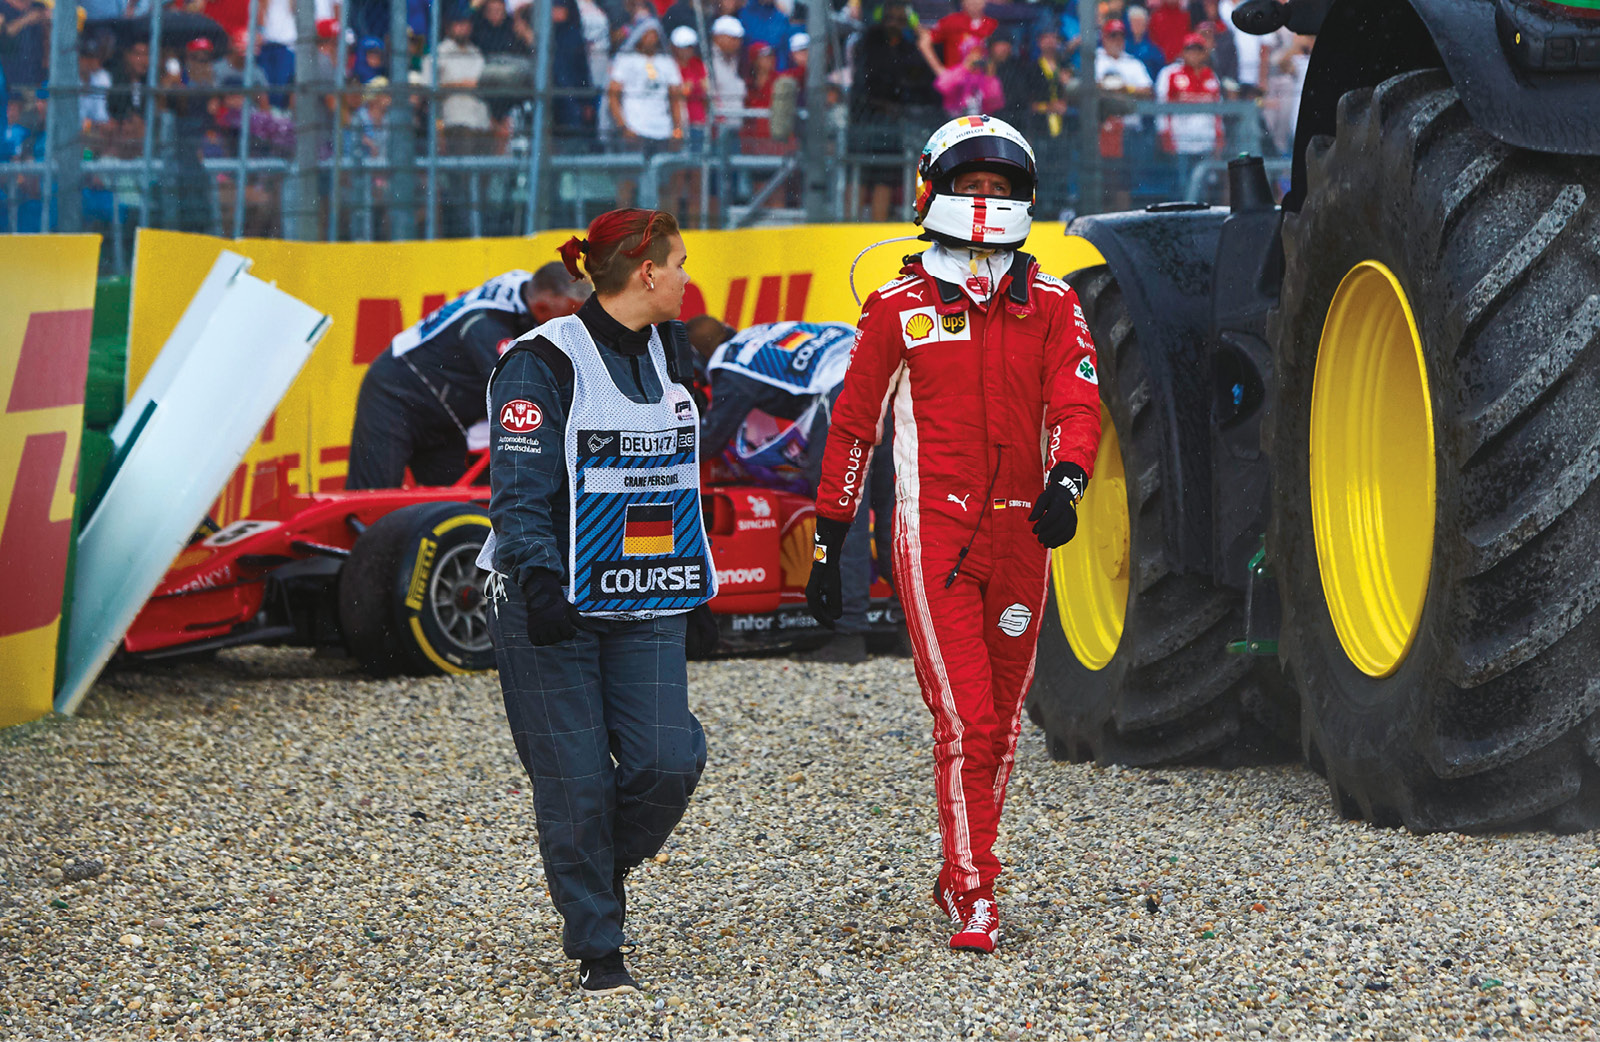 An emotional Vettel trudges away from his Ferrari after his costly error in Germany